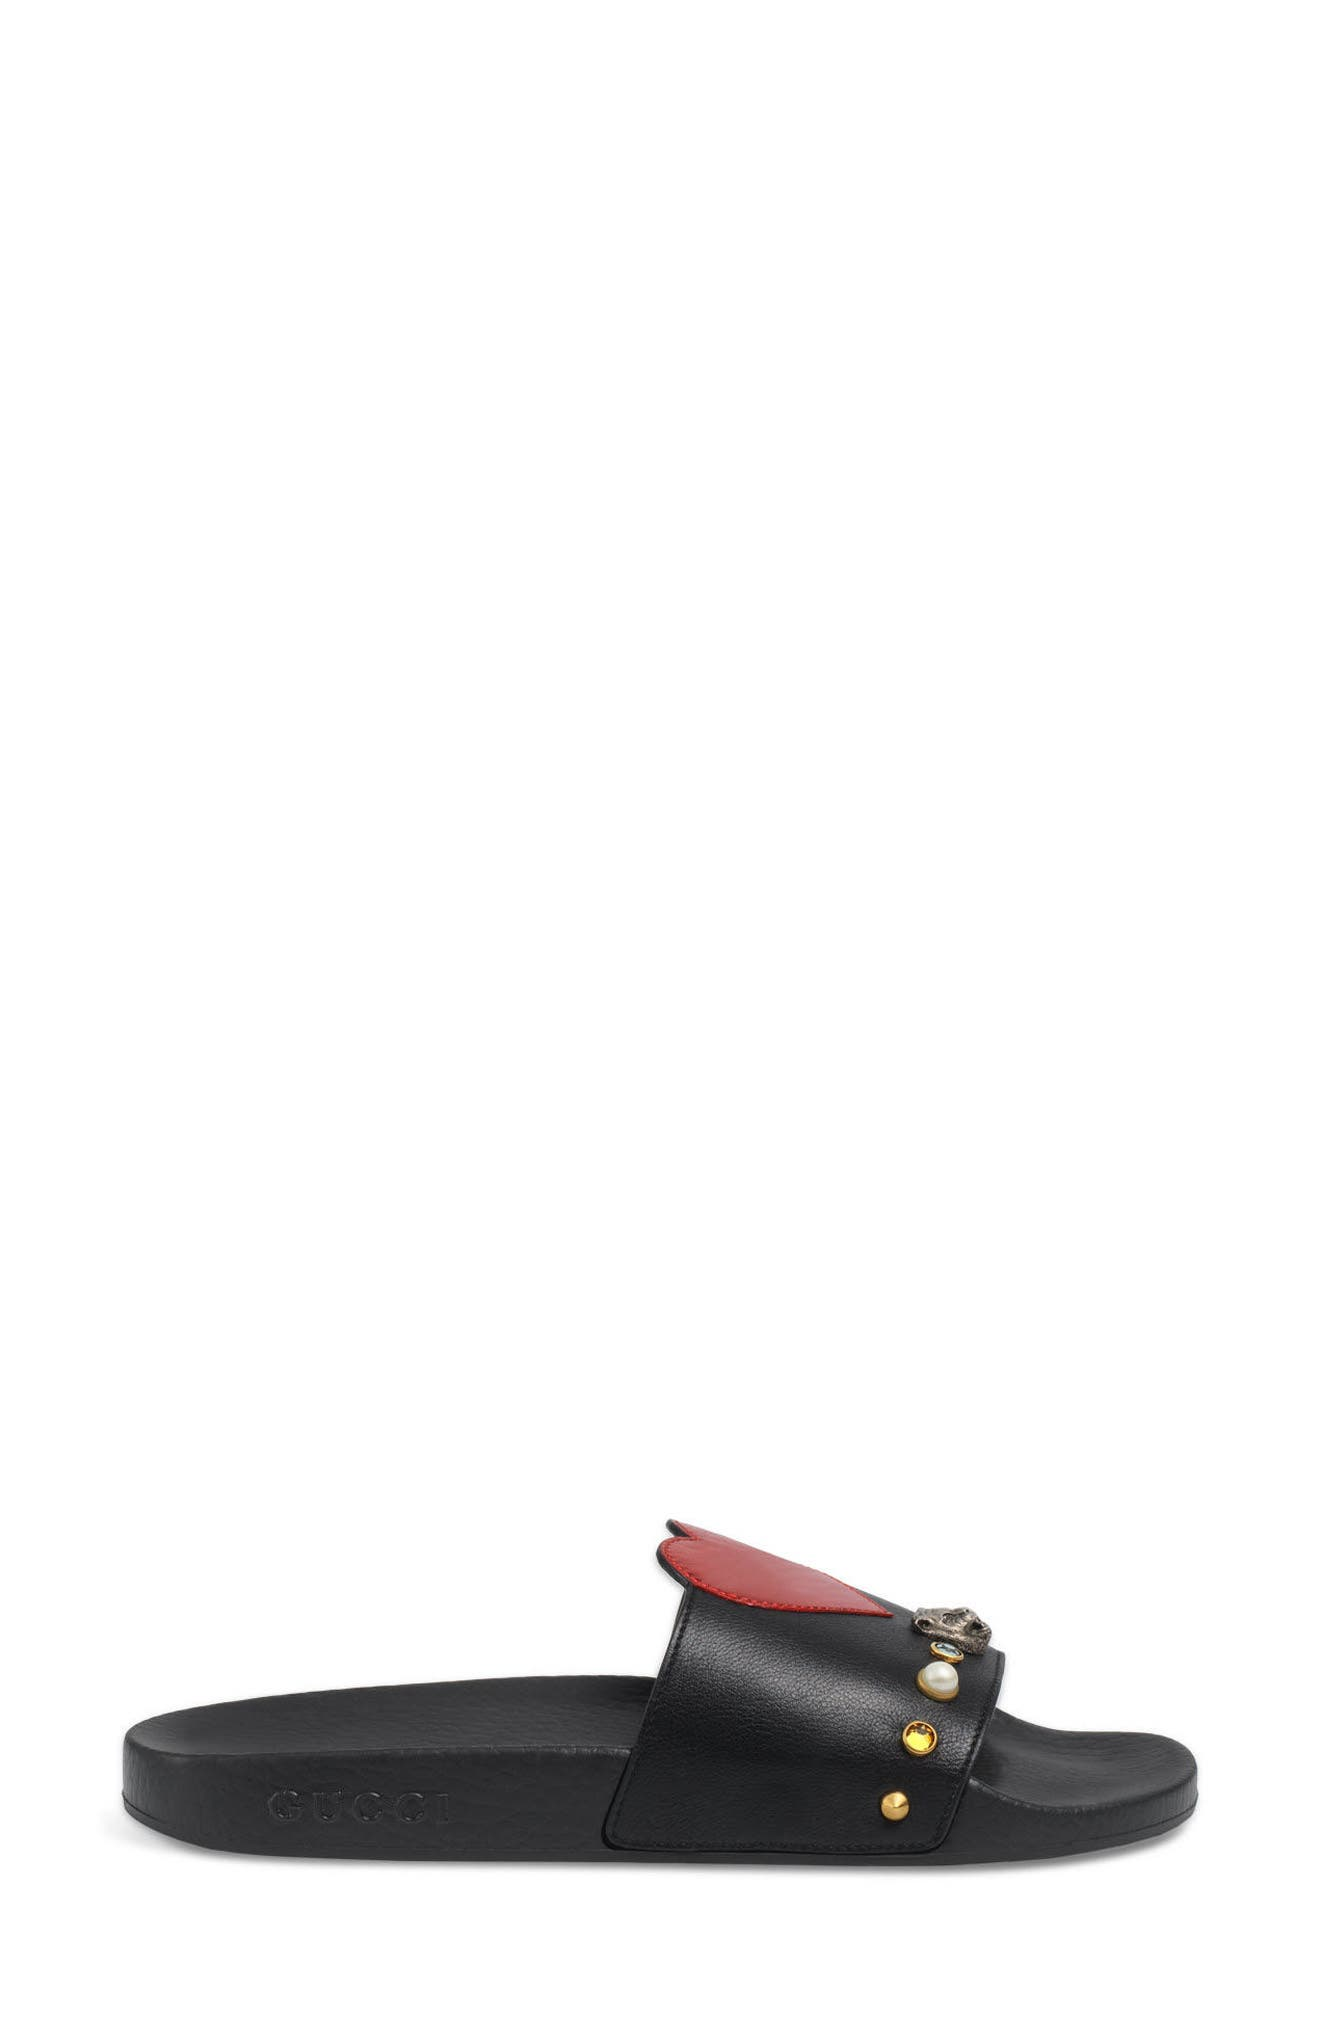 Pursuit Slide Sandal,                             Alternate thumbnail 3, color,                             001